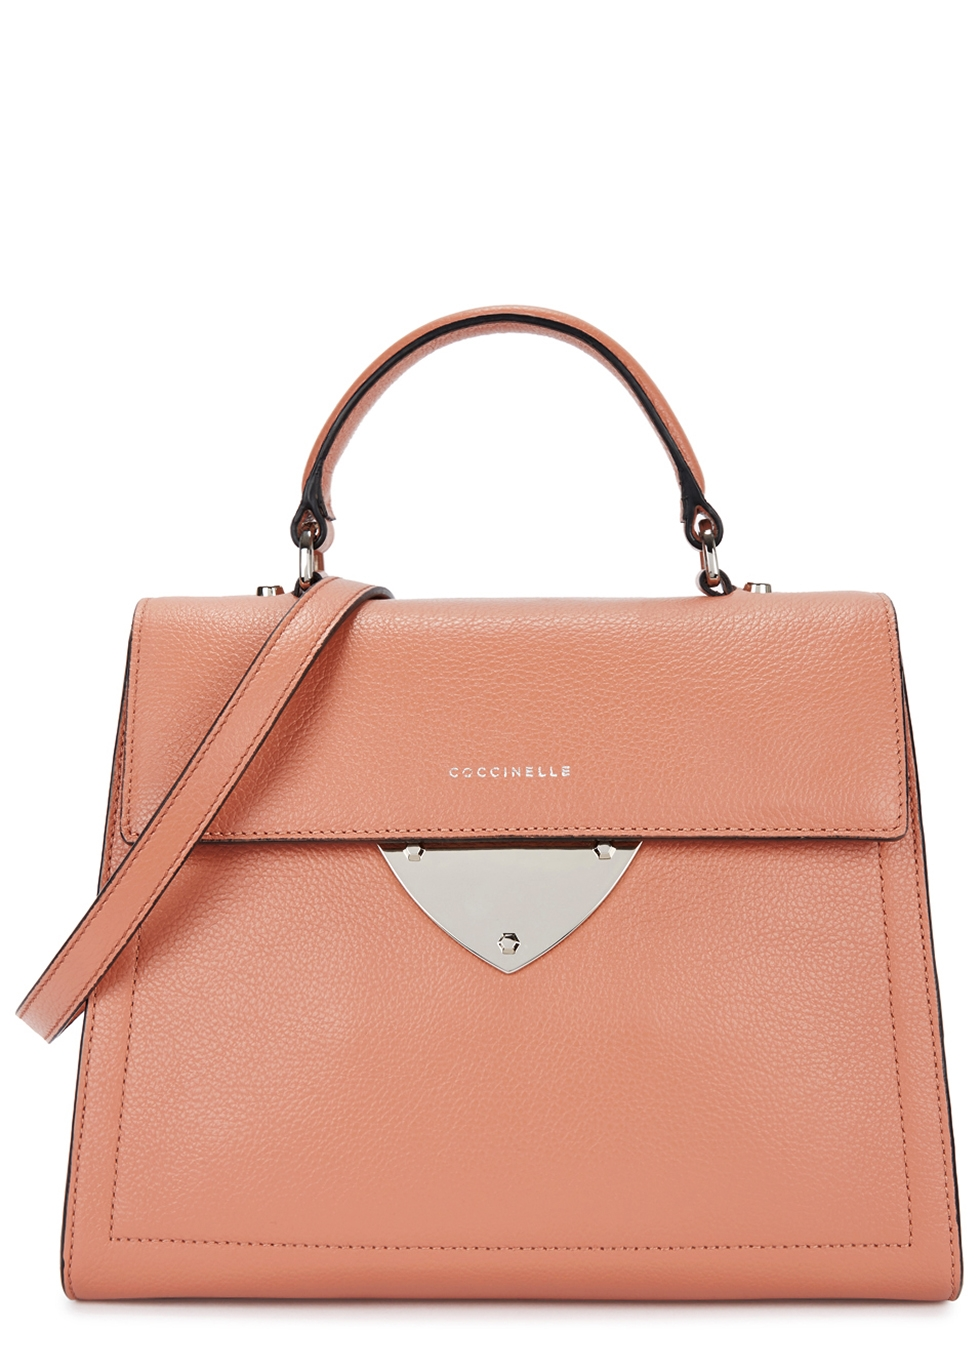 COCCINELLE B14 SALMON LEATHER SHOULDER BAG